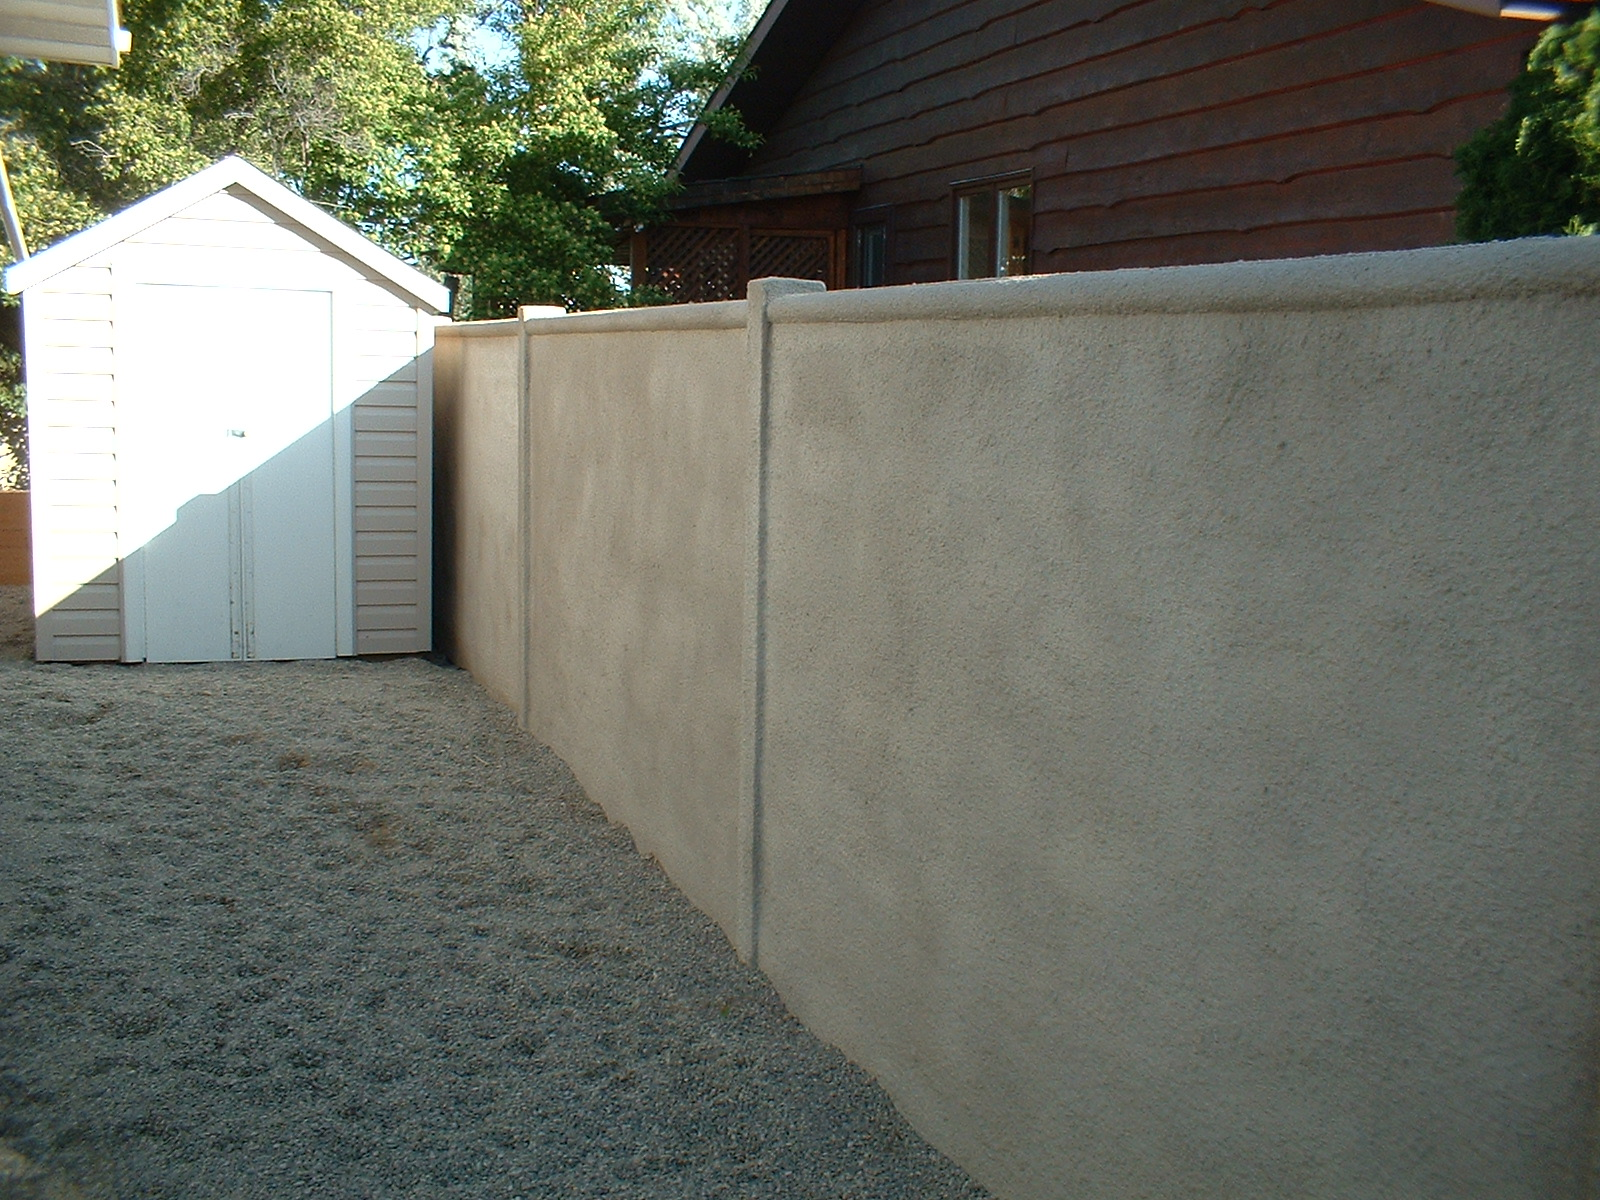 Stucco jmarvinhandyman for Stucco garden wall designs